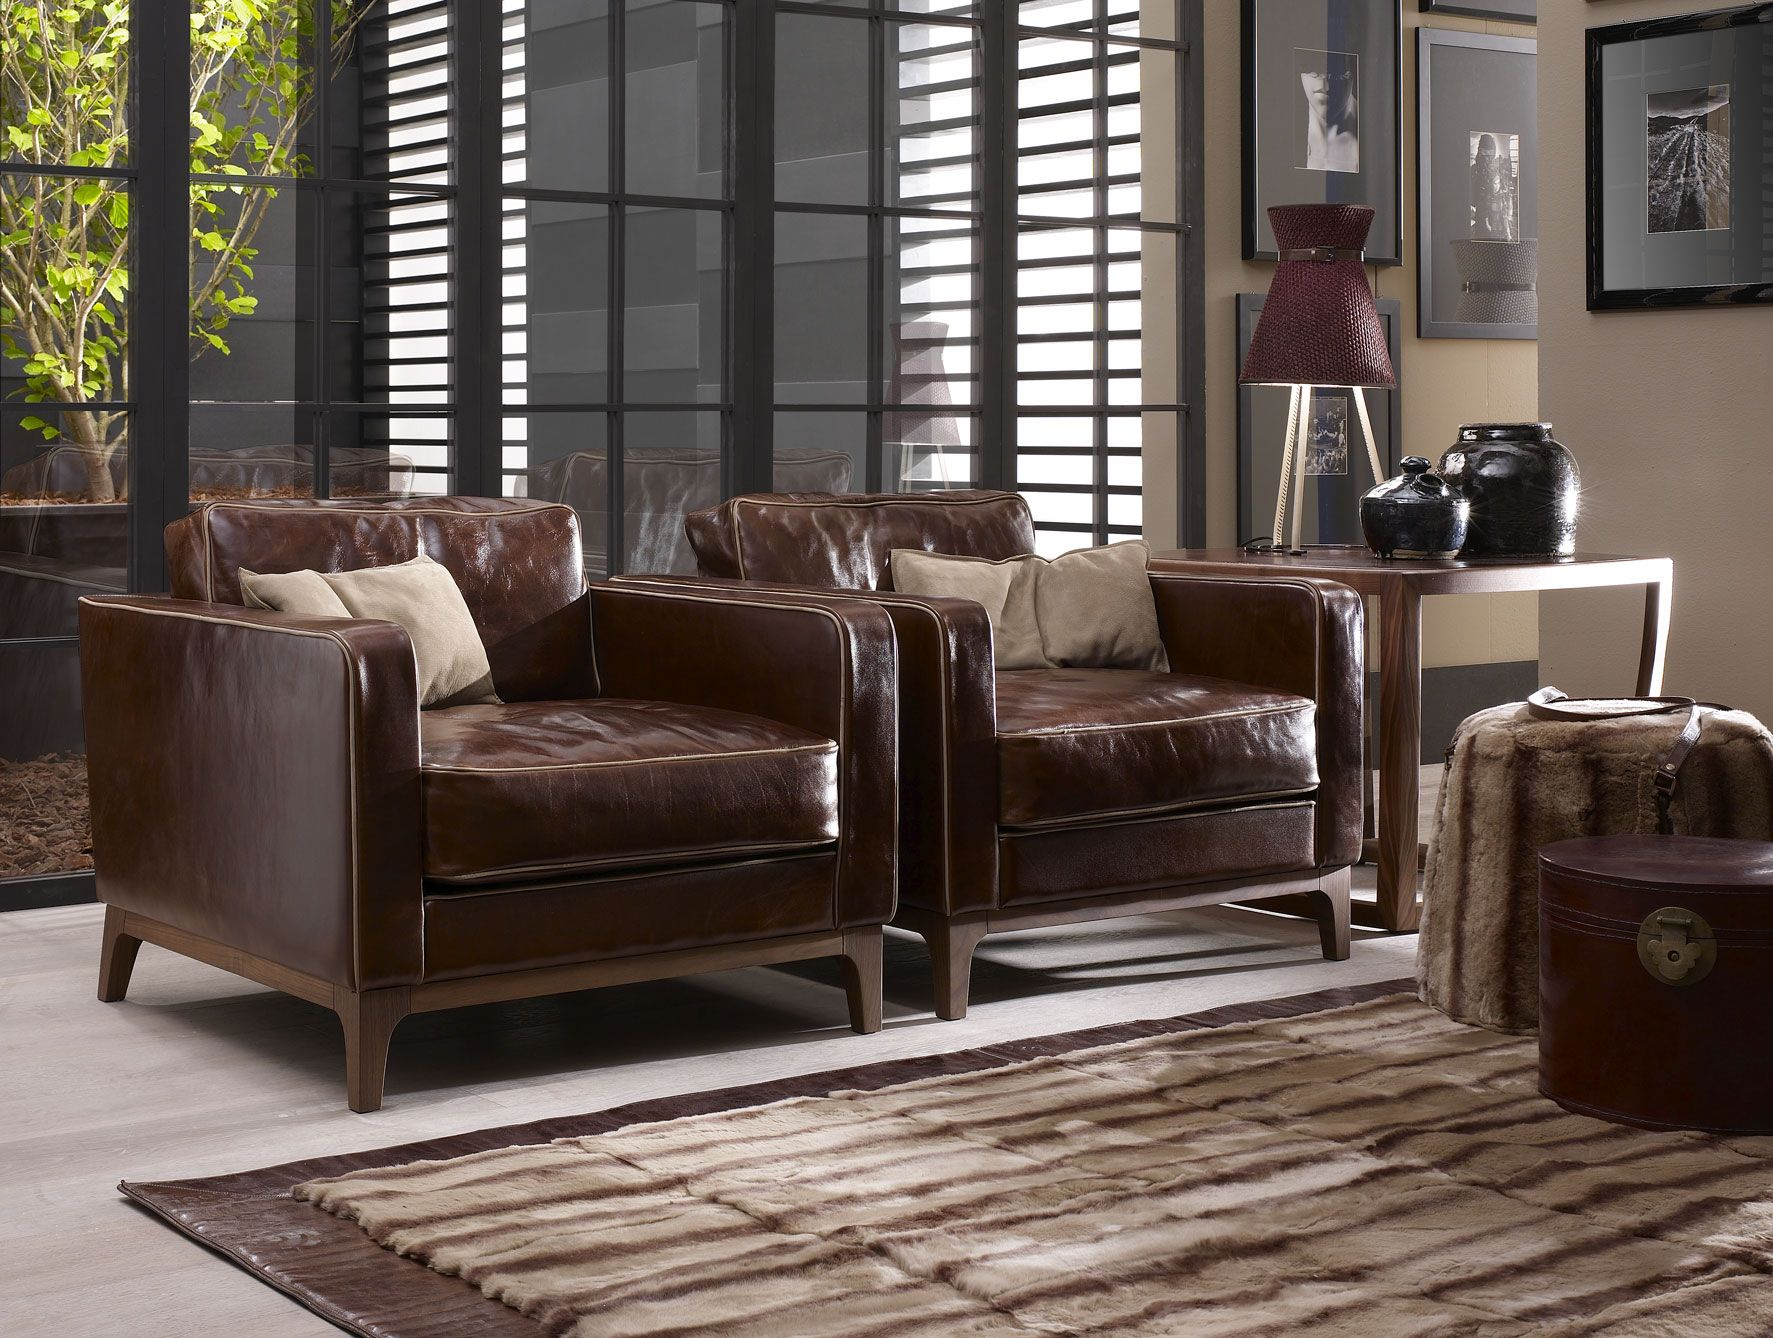 Ginny Contemporary Italian Designer Italian Sofa Chair Handmade In Wood With Smooth Leather This Luxury Modern Furniture Collection Featur